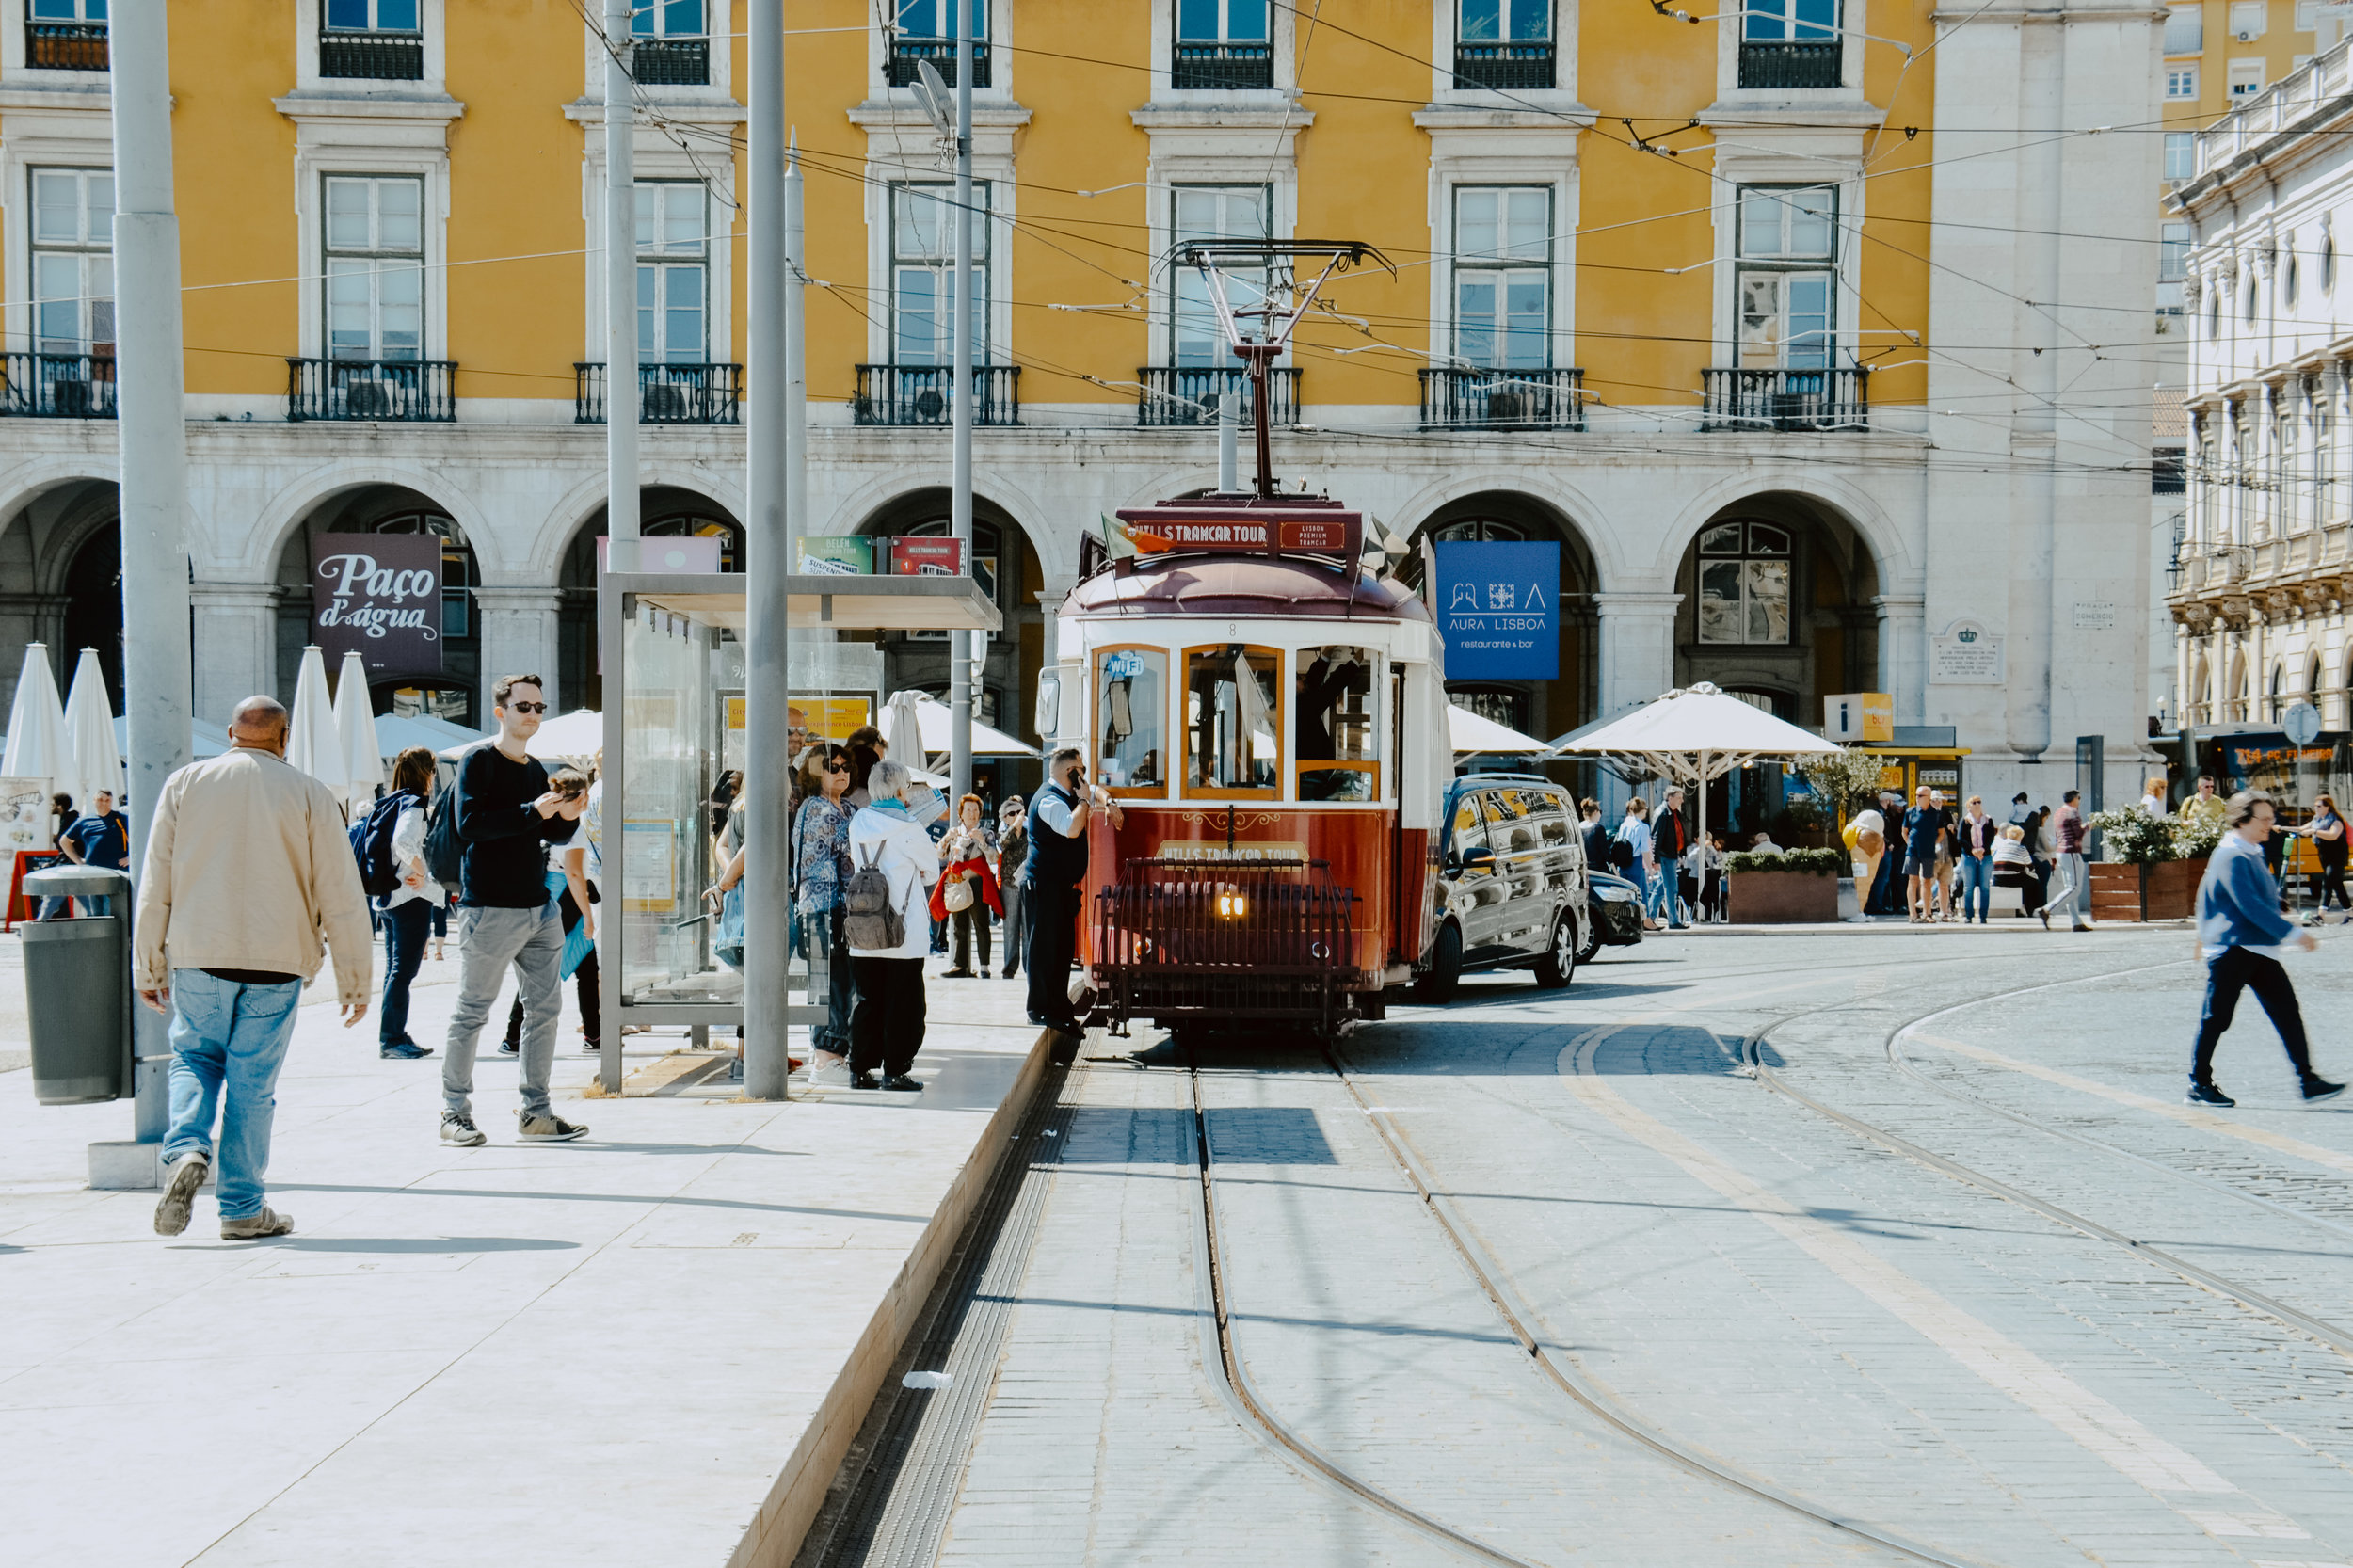 Trams in Lisbon